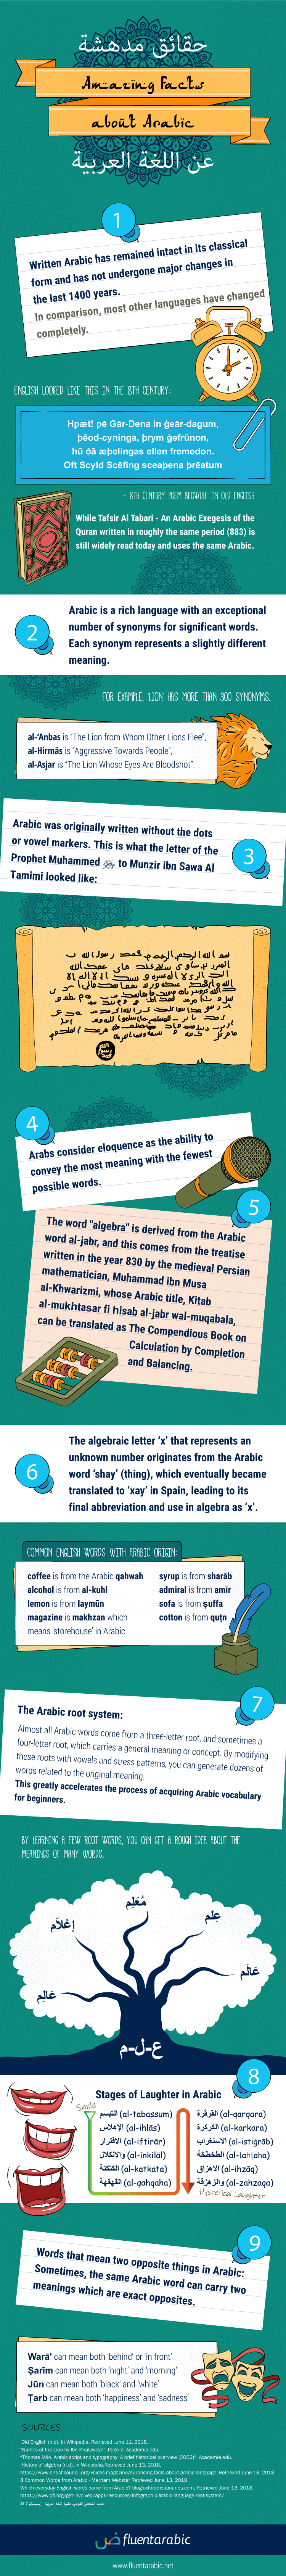 Facts-About-Arabic-Language